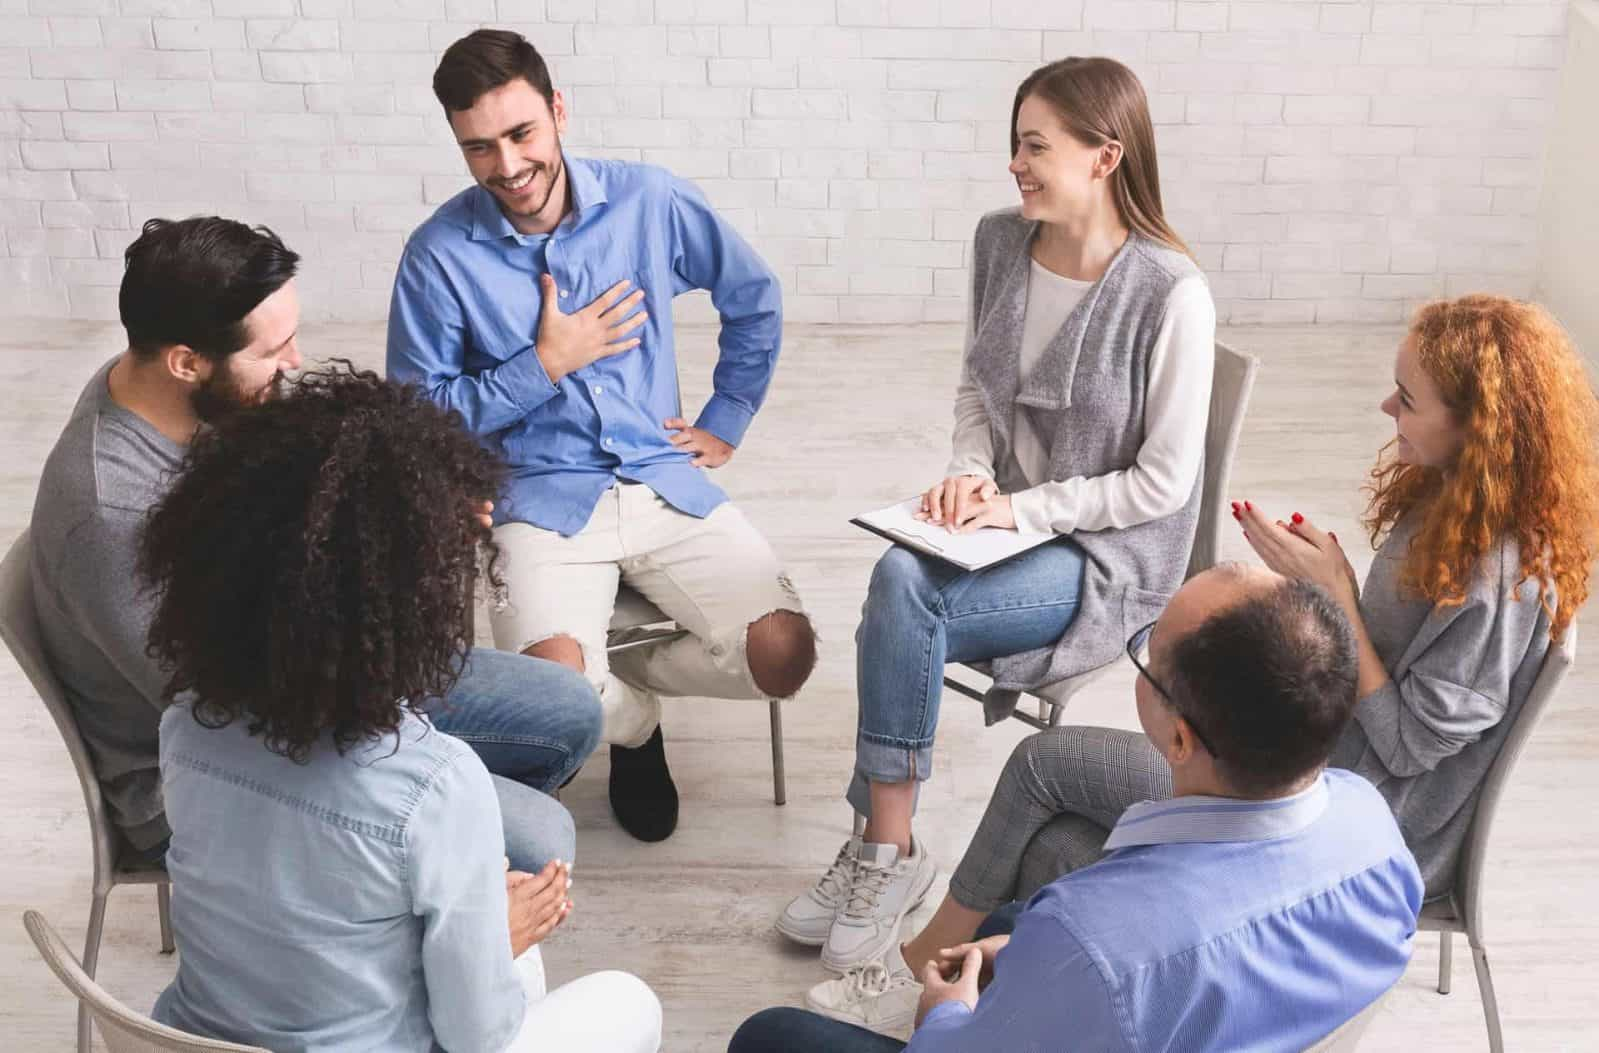 group counselling addiction treatment services